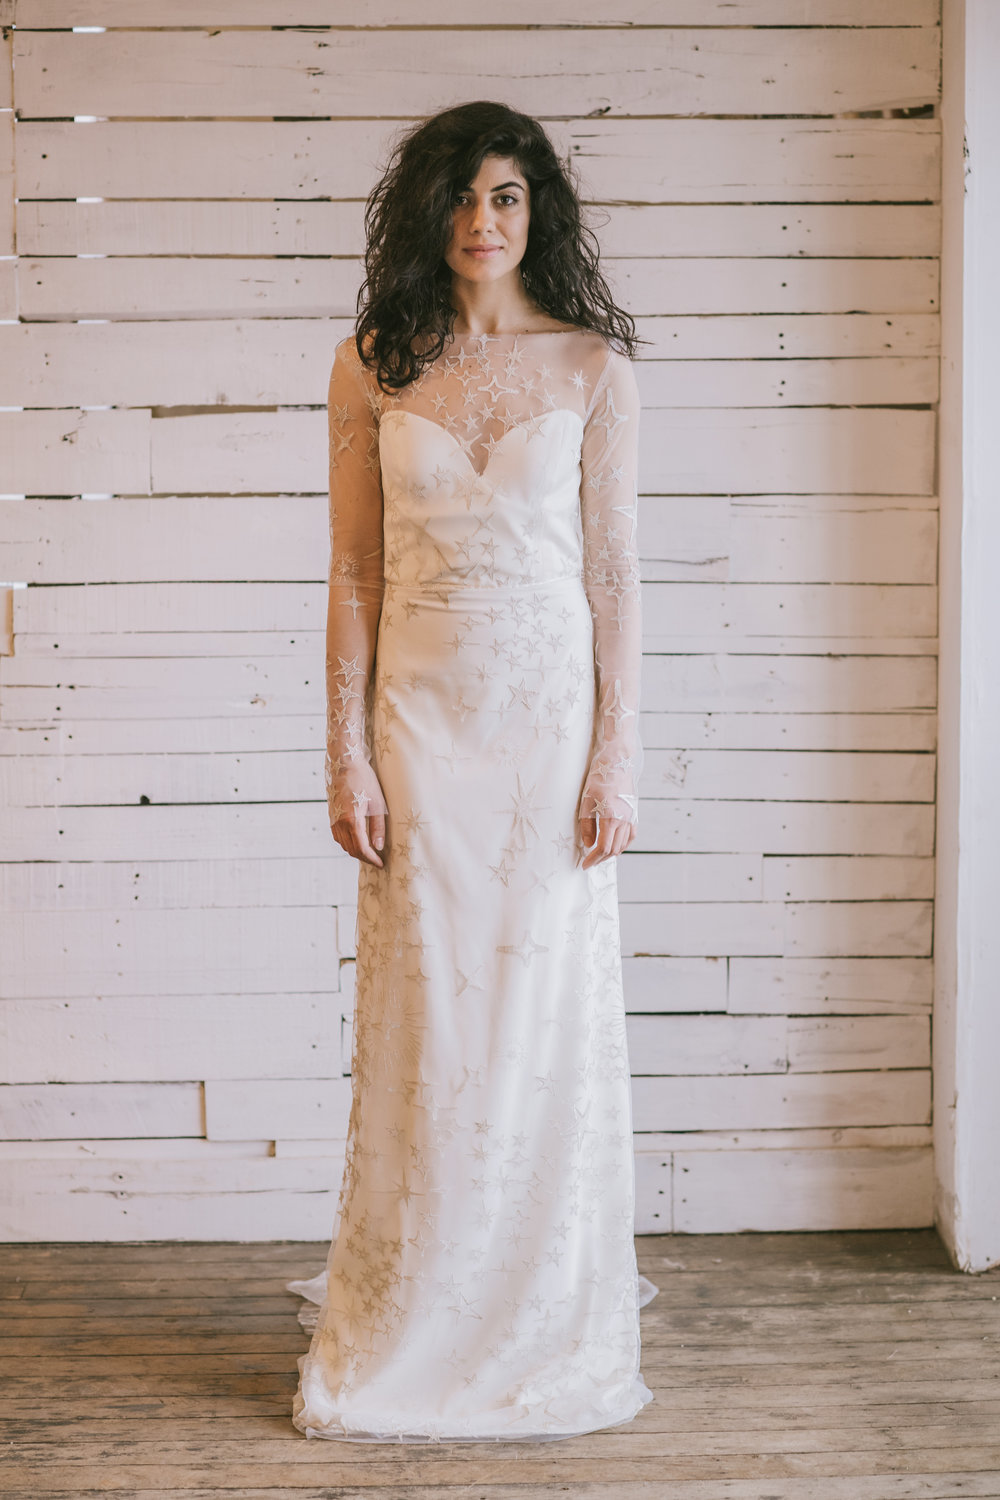 ivory-and-beau-bridal-boutique-loulette-bridal-trunk-show-bohemian-wedding-gowns-boho-wedding-dresses-savannah-boho-wedding-5.JPG